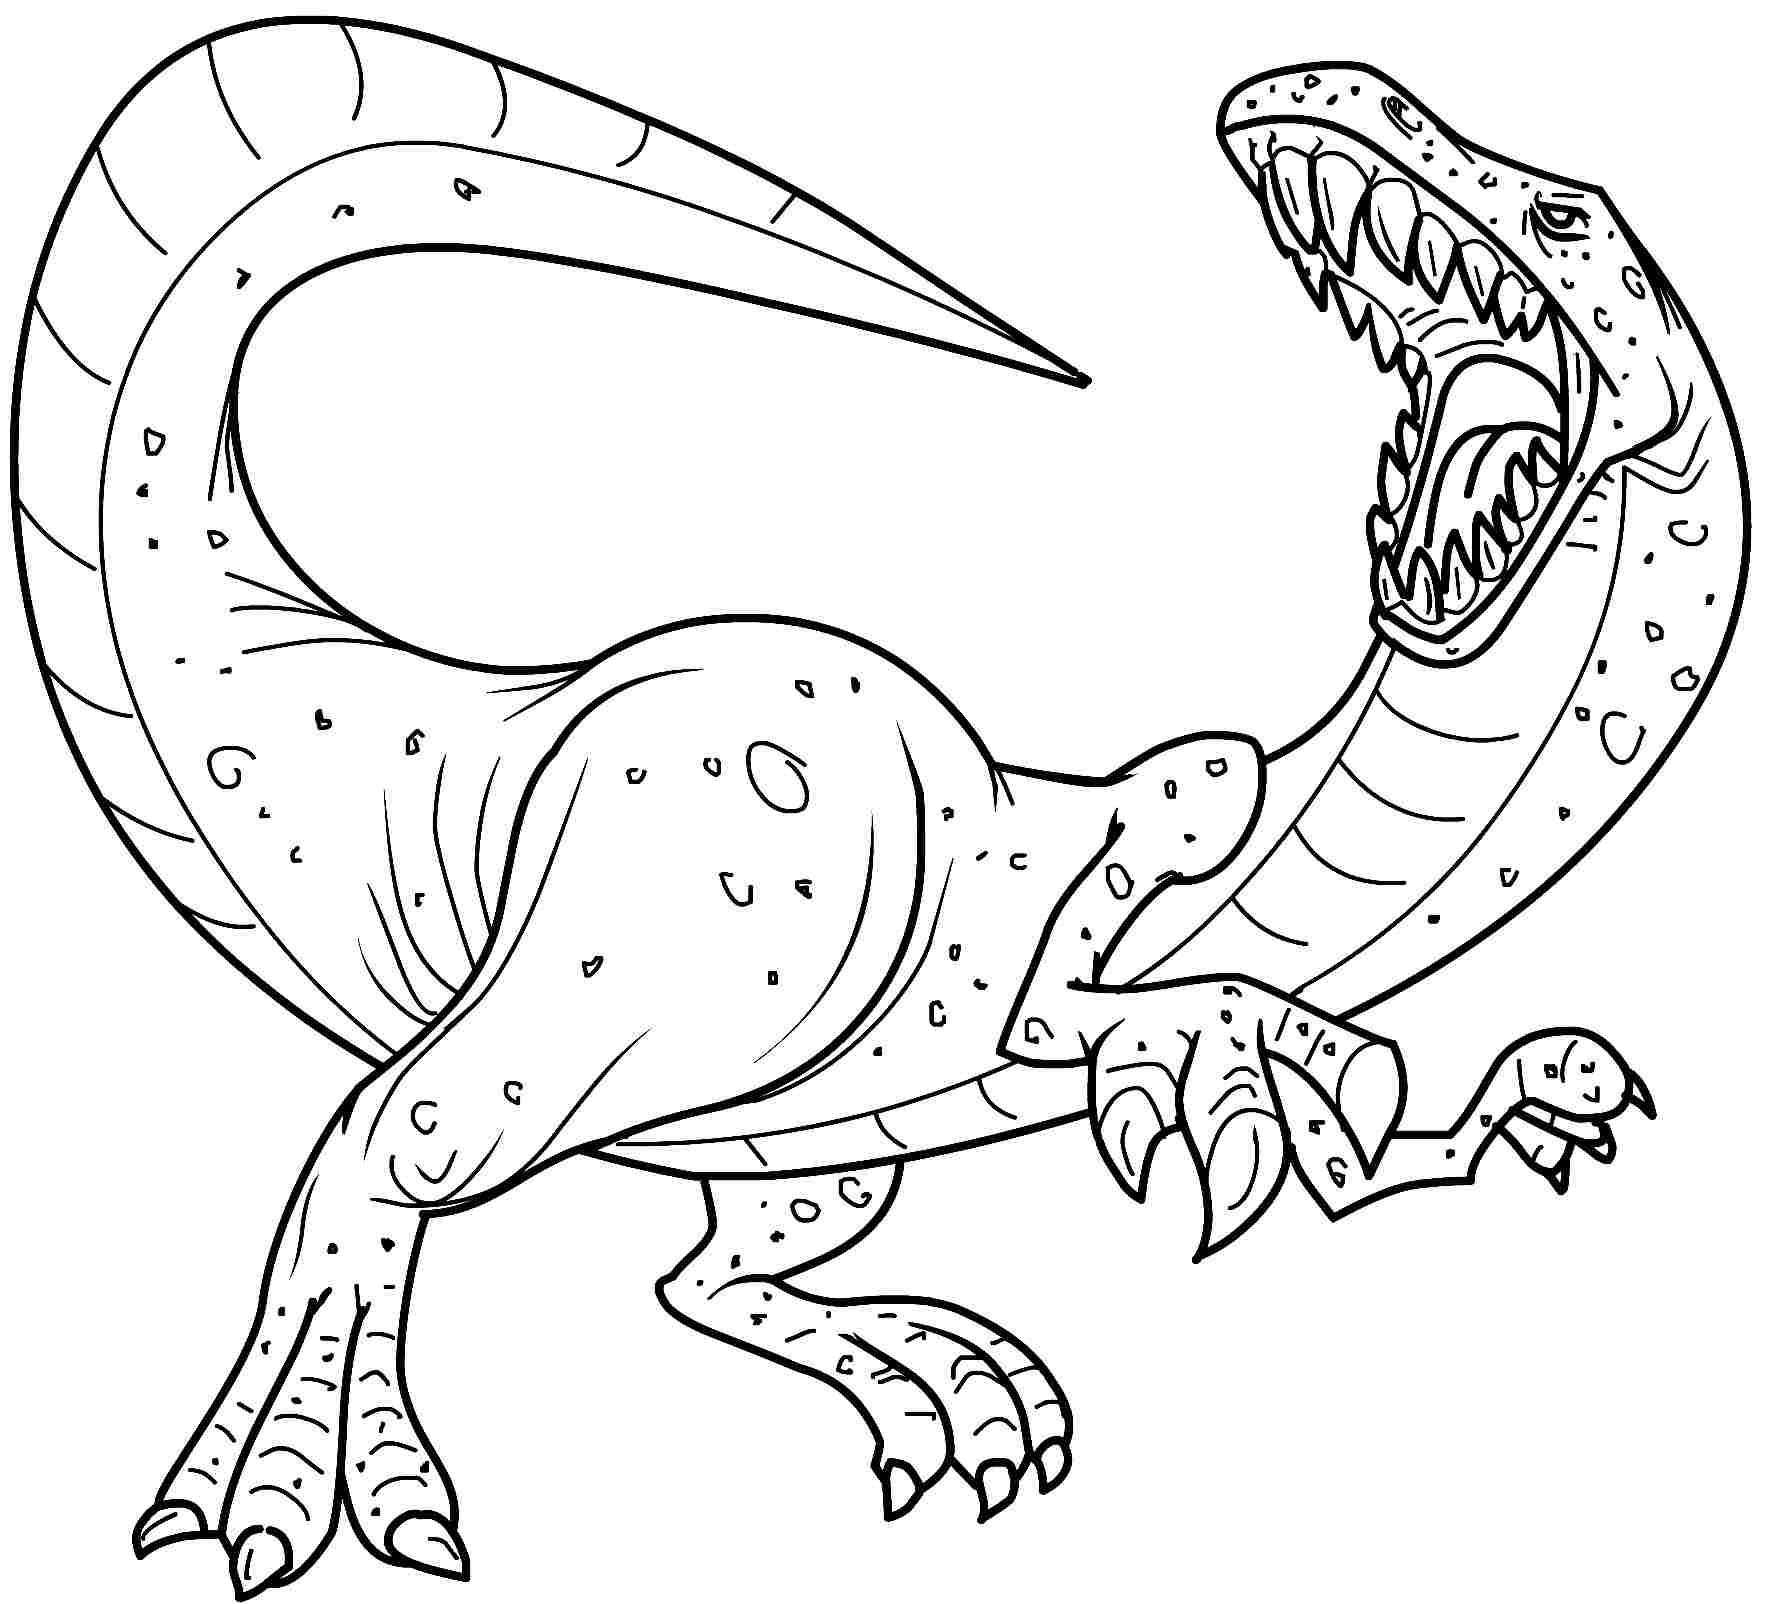 dinosaur coloring pages with names - allosaurus coloring page dinosaurs pictures and facts